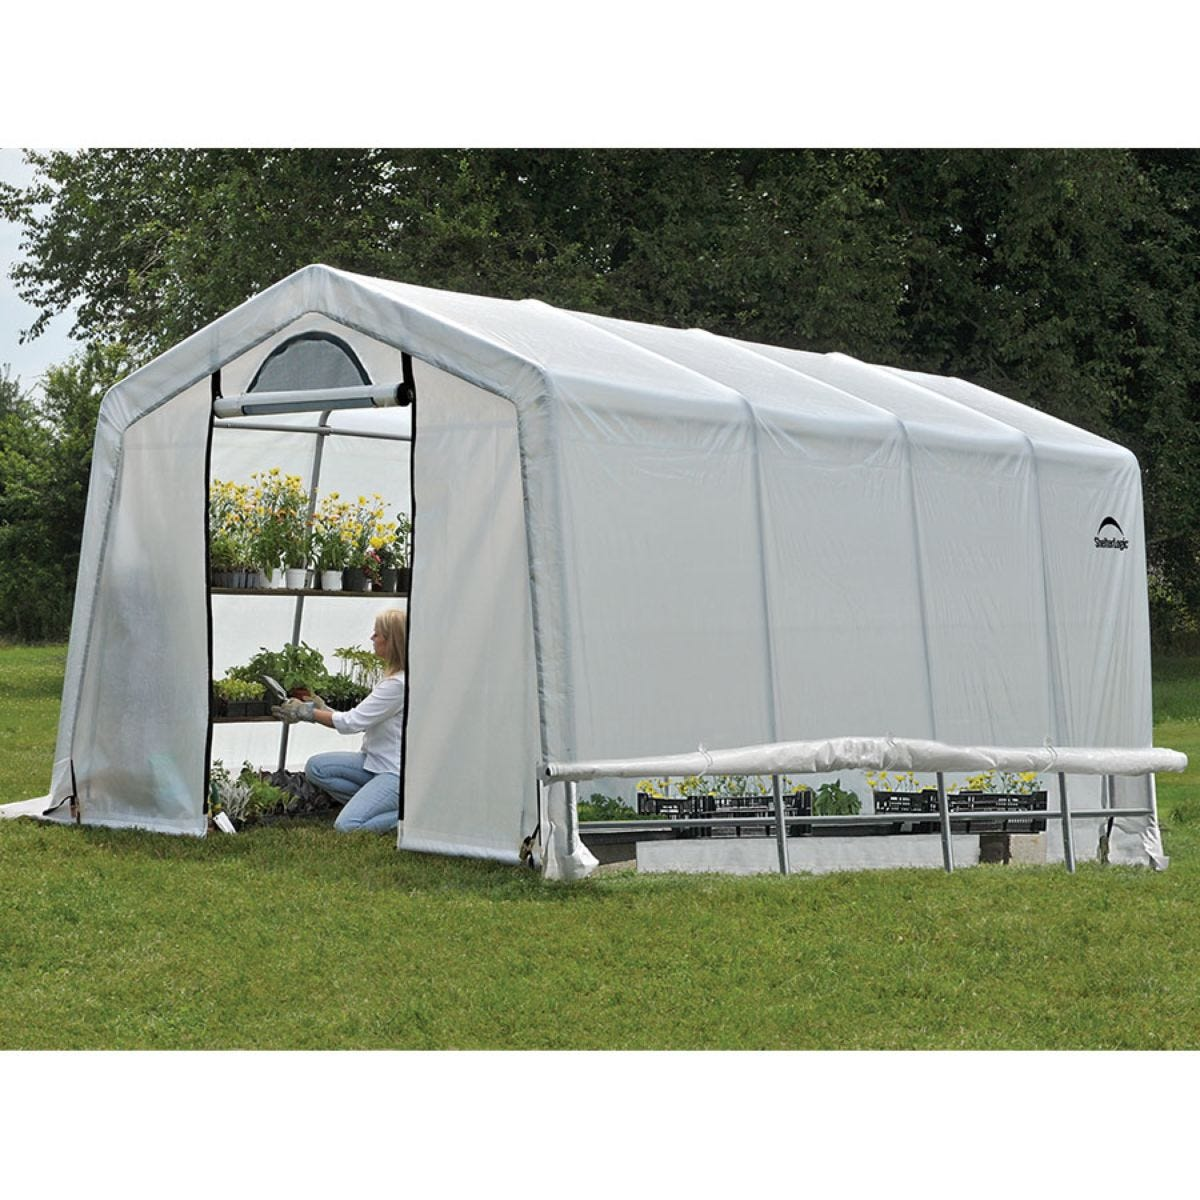 ShelterLogic 10ftx20ft Greenhouse in a Box